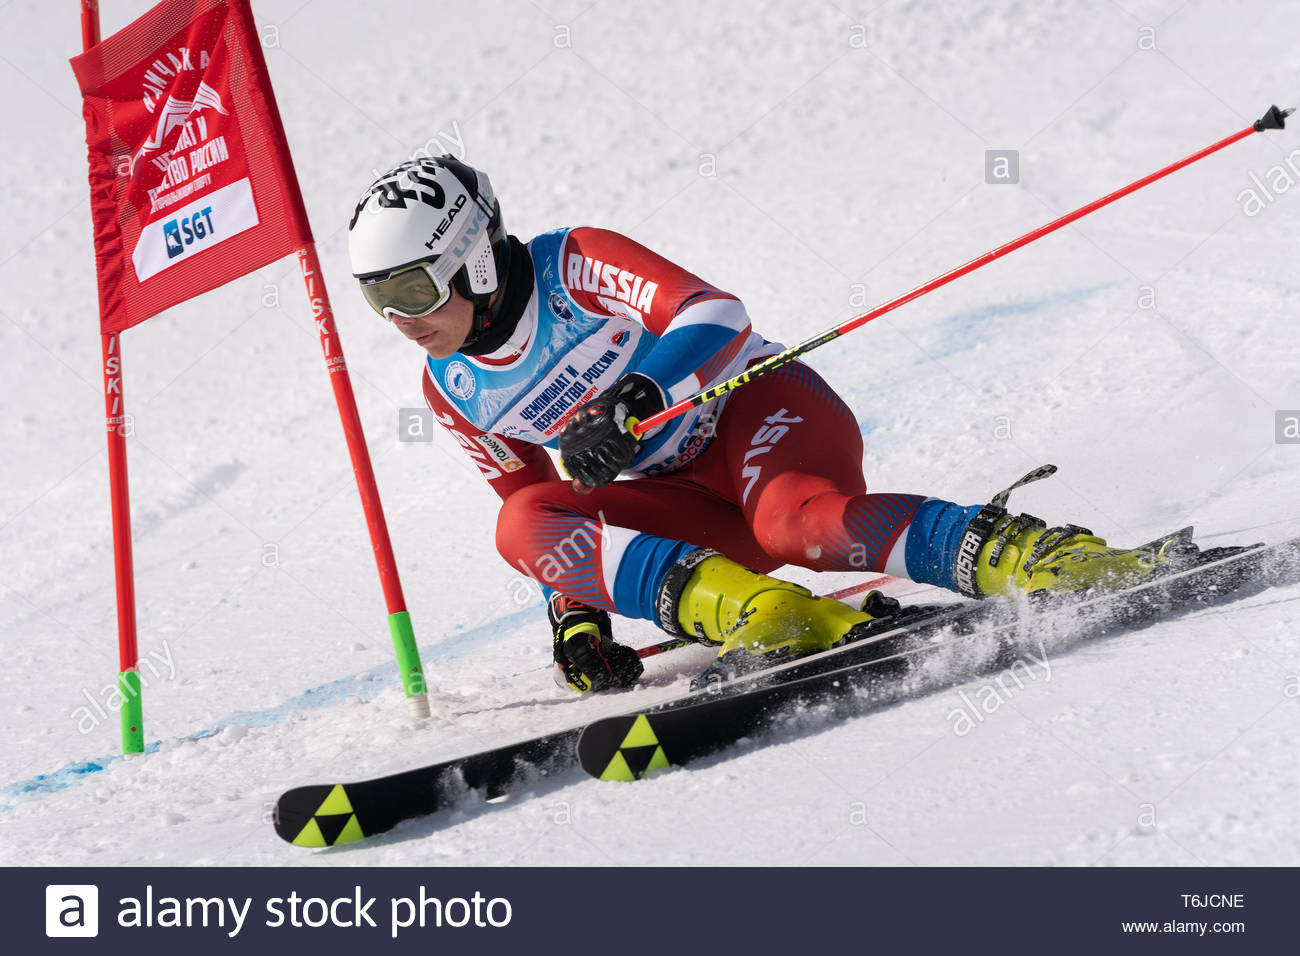 KAMCHATKA PENINSULA, RUSSIA - APR 1, 2019: Russian Alpine Skiing Cup, International Ski Federation (FIS) Championship, giant slalom. Mountain skier Ni - Stock Image